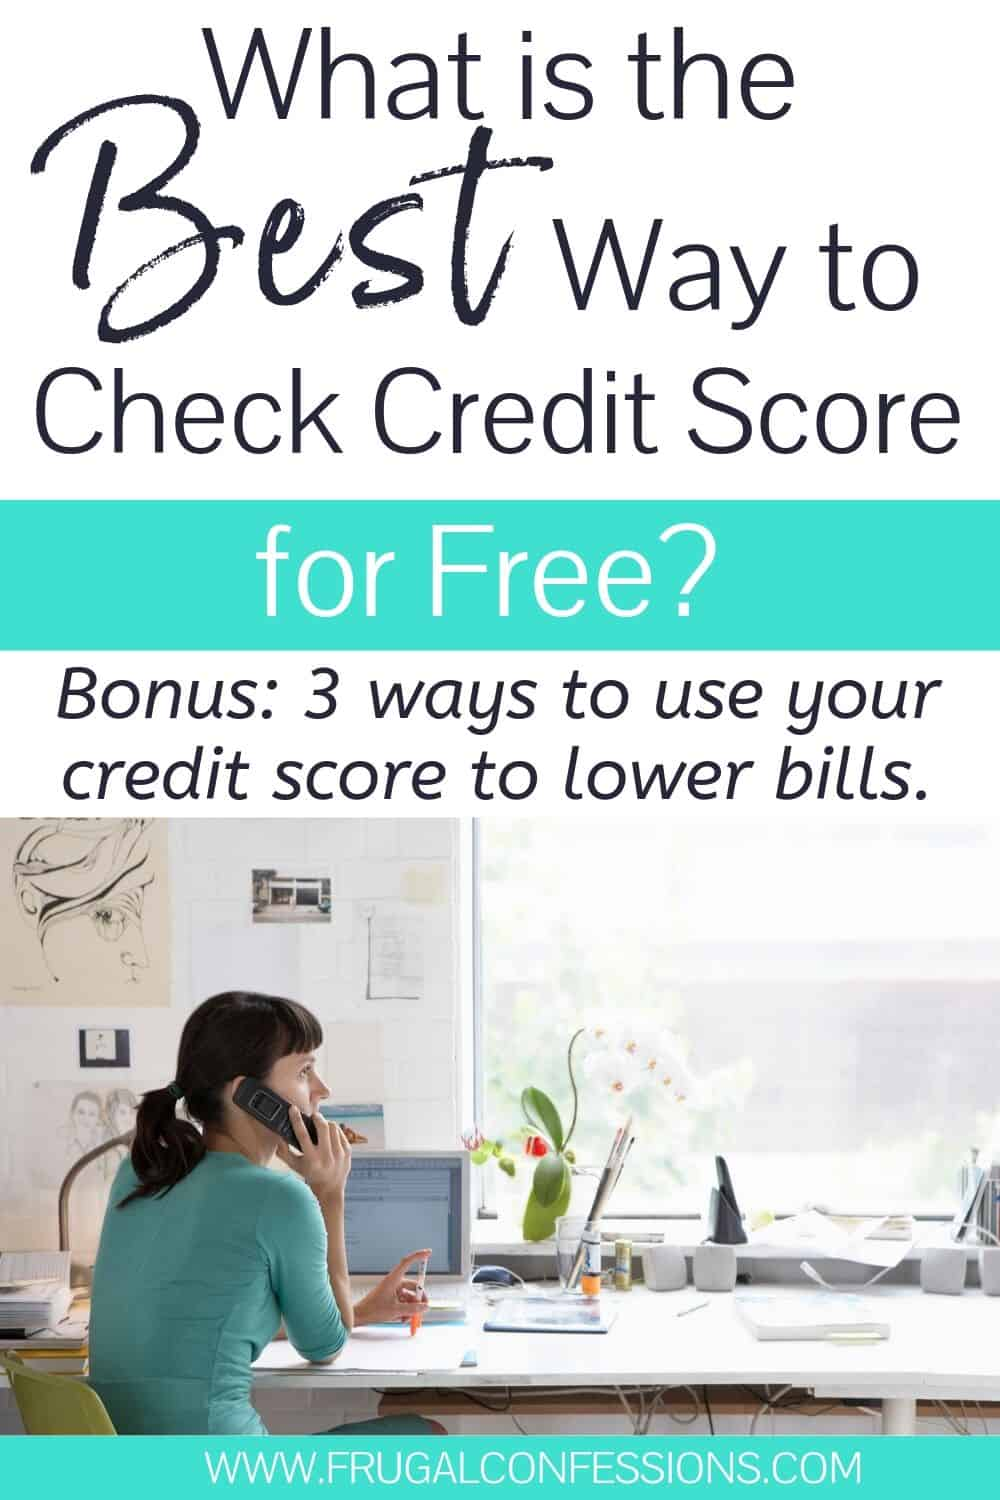 """young woman on phone checking credit score, text overlay """"what is the best way to check credit score for free?"""""""